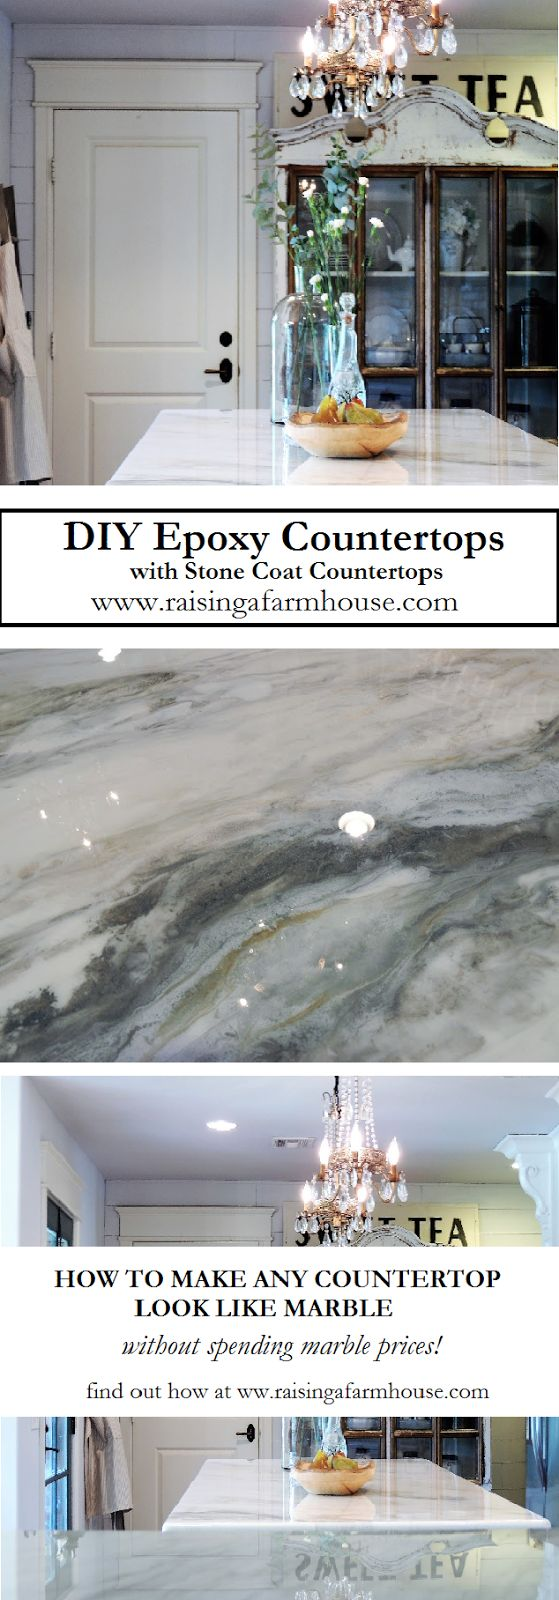 DIY Epoxy Countertops is a great alternative for covering ugly countertops, not only are they beautiful, they are scratch and stain resistant, stain proof, food grade, seamless and 100% customizable! Visit Raising a Farmhouse for her review on this amazing product!